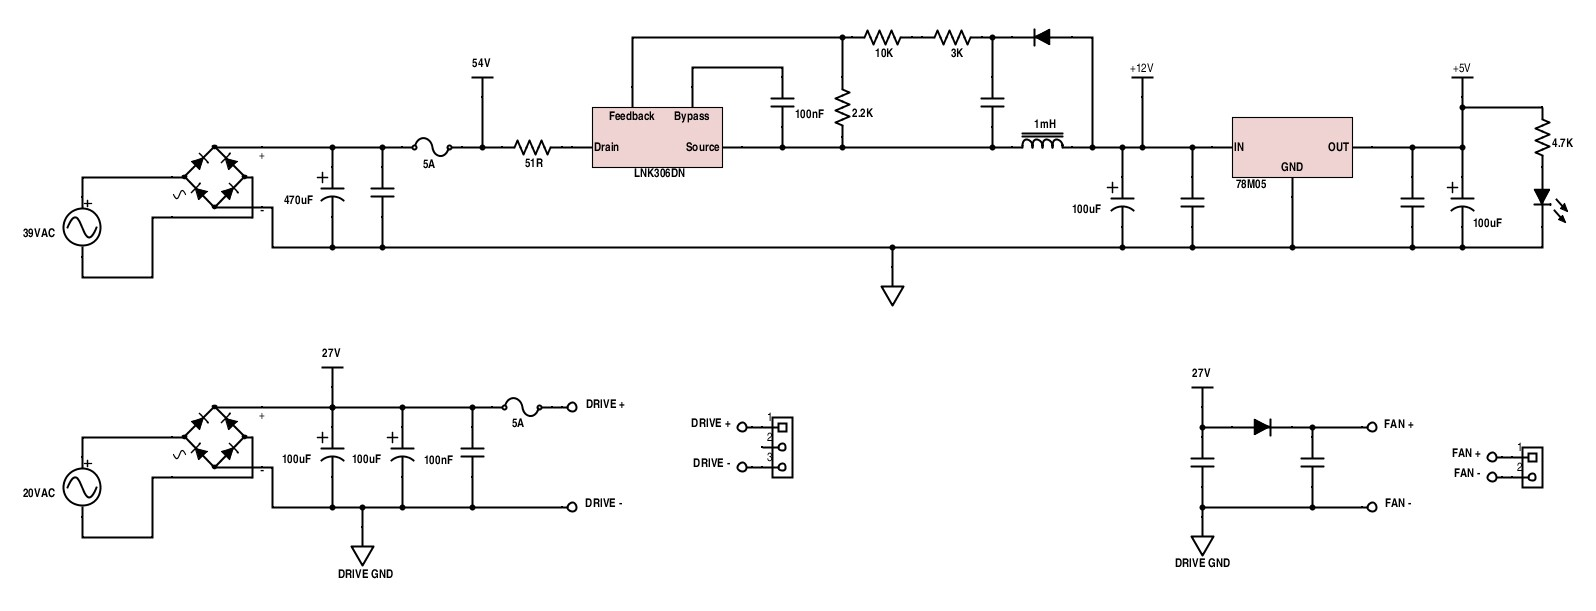 3040 Cnc Milling Machine Mods Power Wiring Diagram Supplies And Fan Output